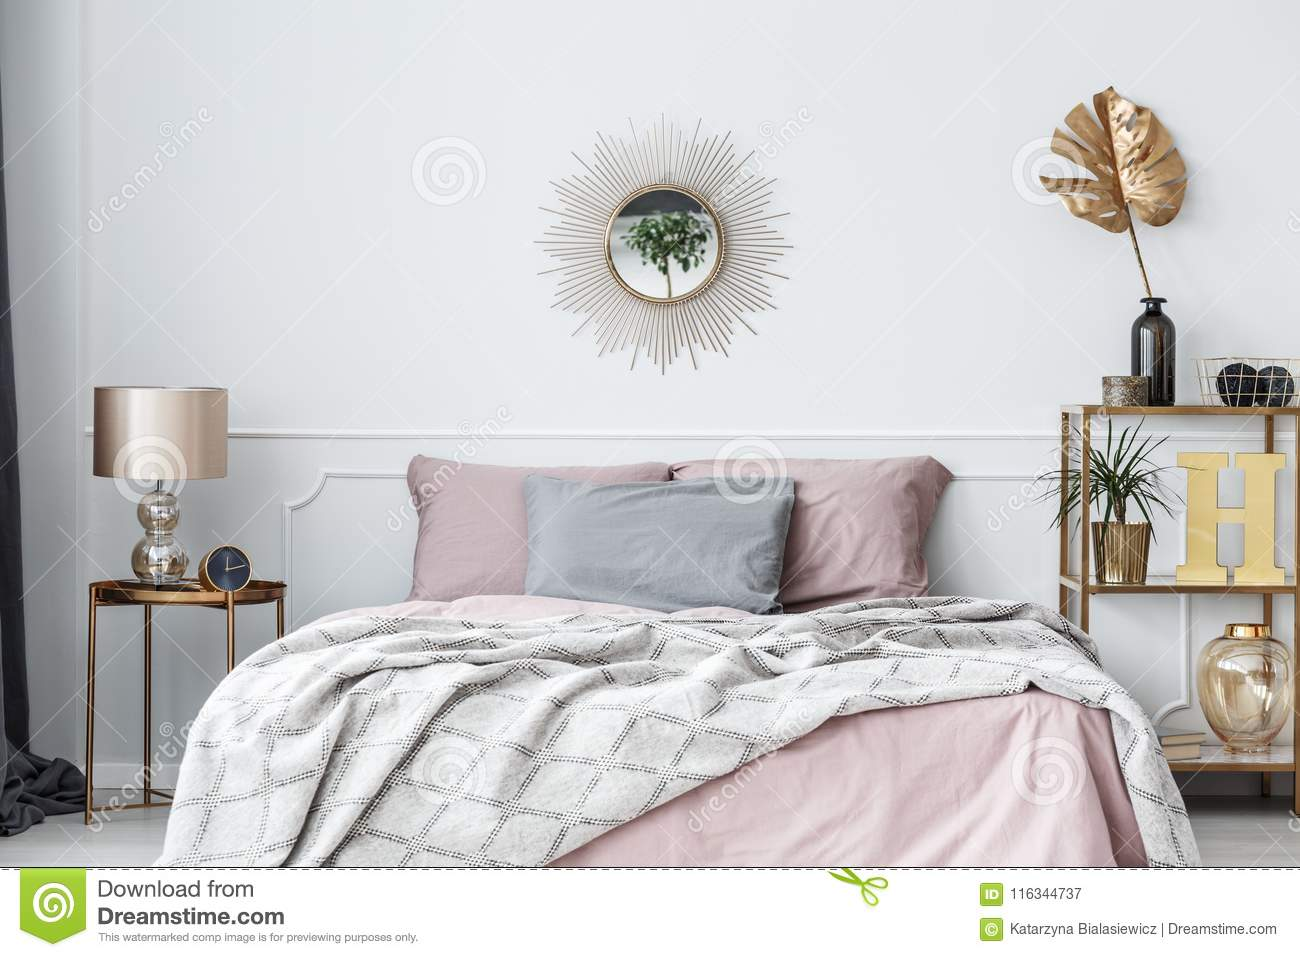 Gentil Elegant, Pink And Gold Bedroom Interior With Sun Shaped Mirror Above Bed  With Pillows And Blanket